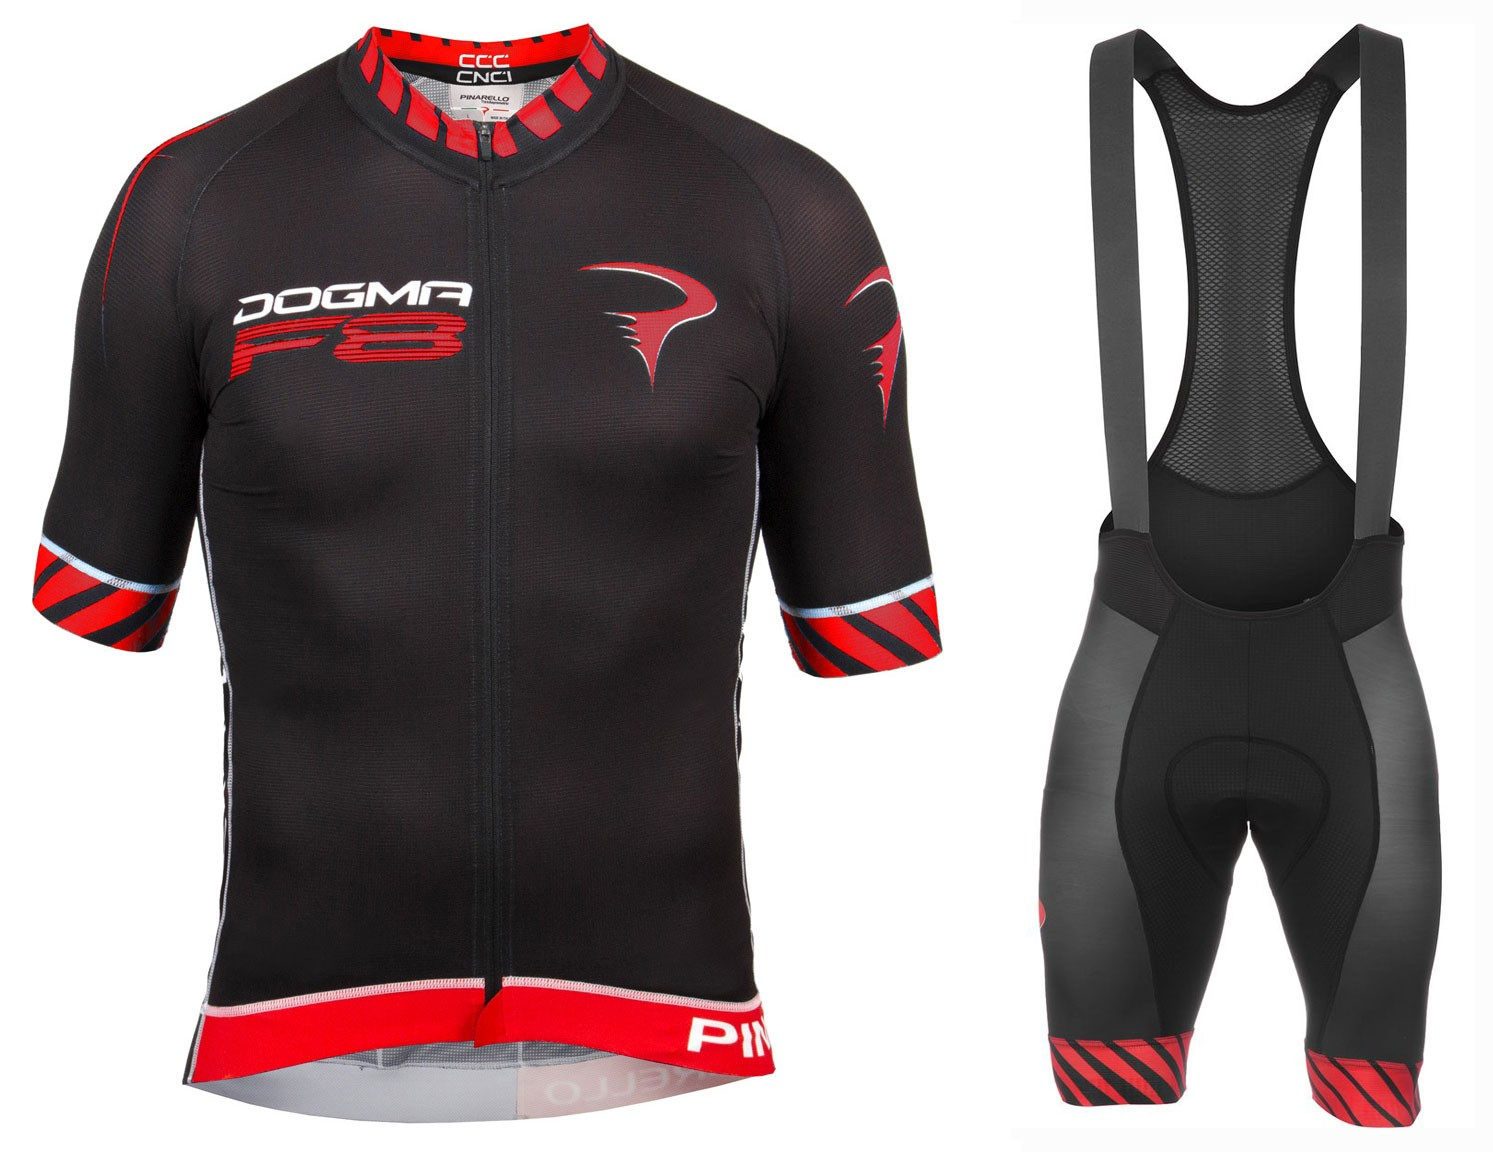 2016 Pinarello Dogma F8 Black-Red Cycling Jersey And Bib Shorts Set d36d6a282